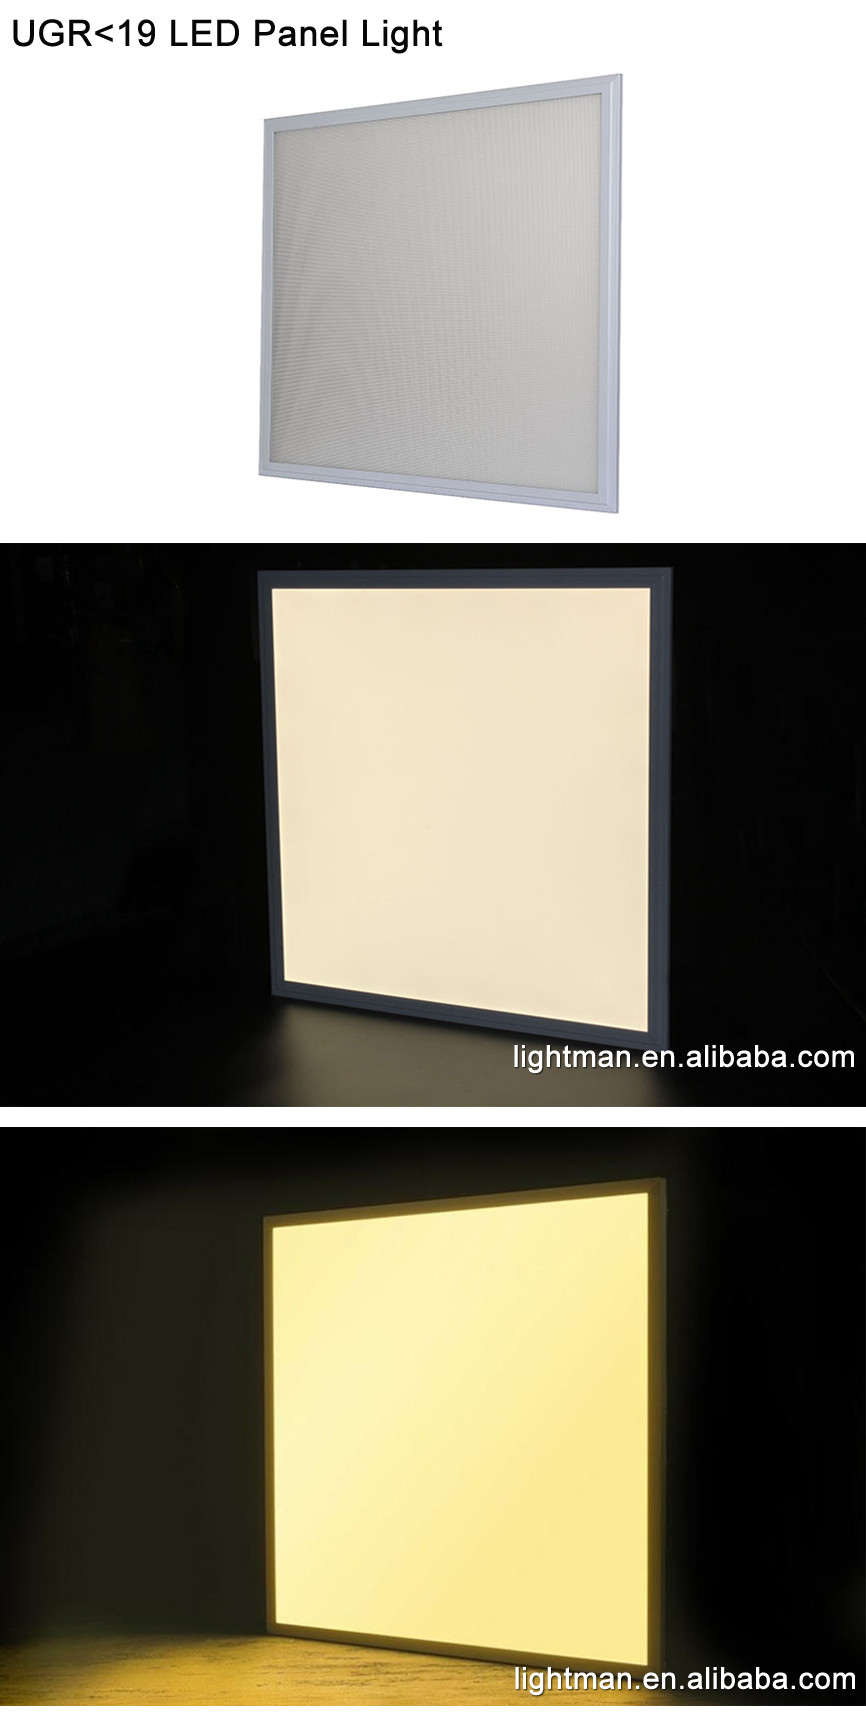 20w ugr19 led light panel with pc diffuser led lighting plate 300x300